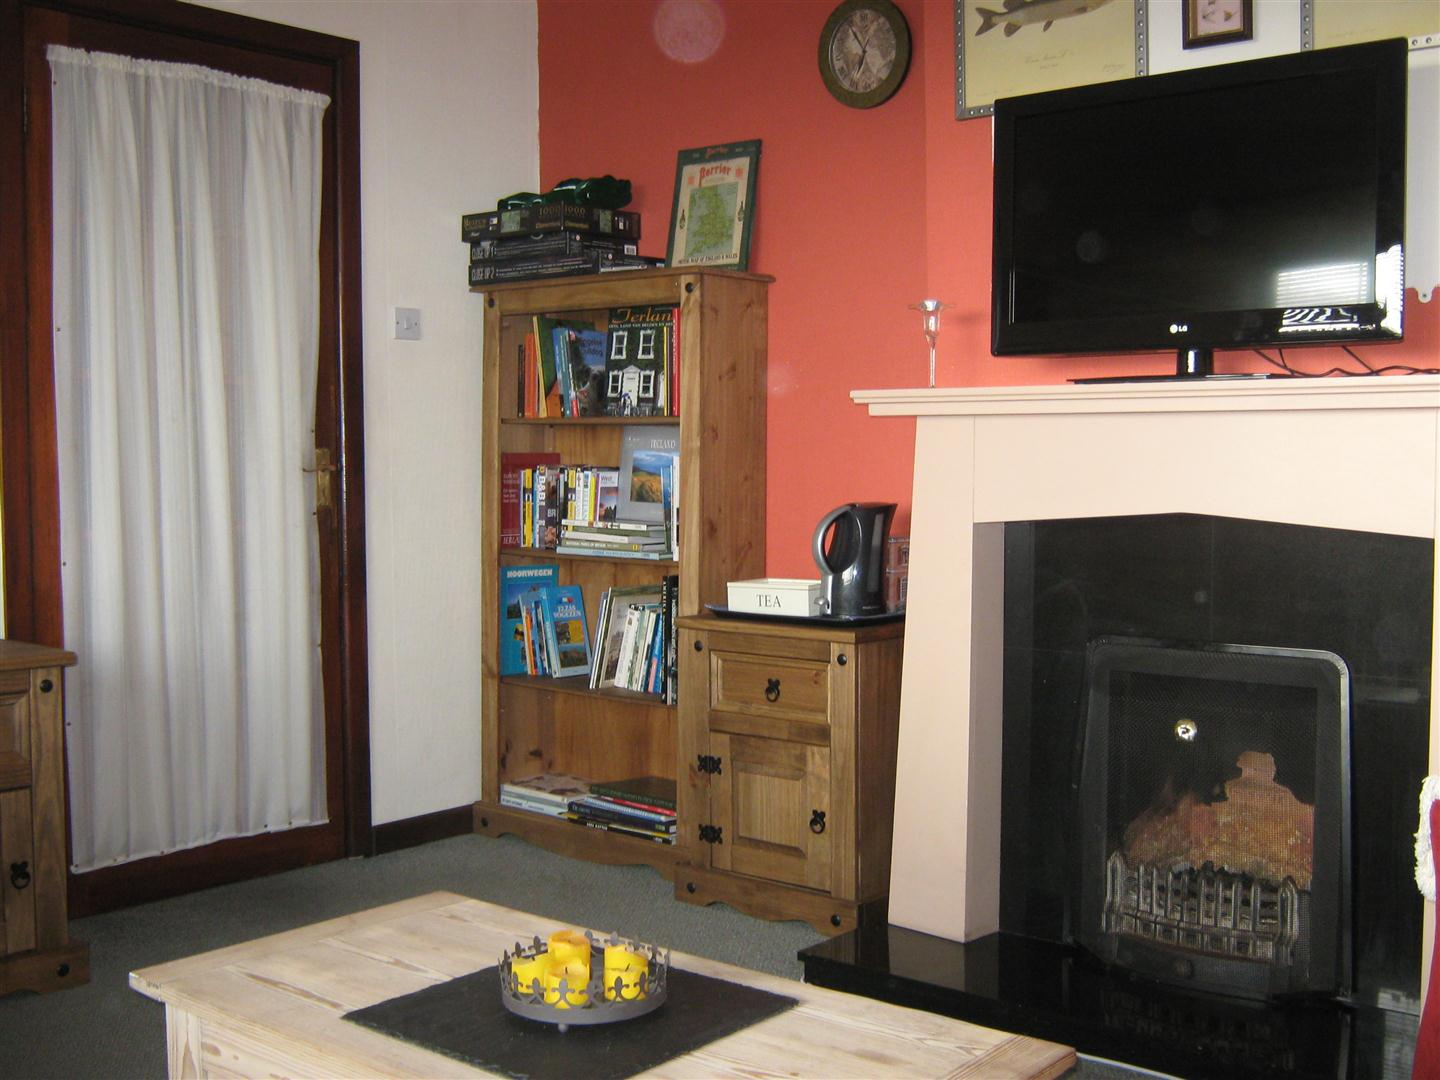 Slieve Elva Bed and Breakfast fire